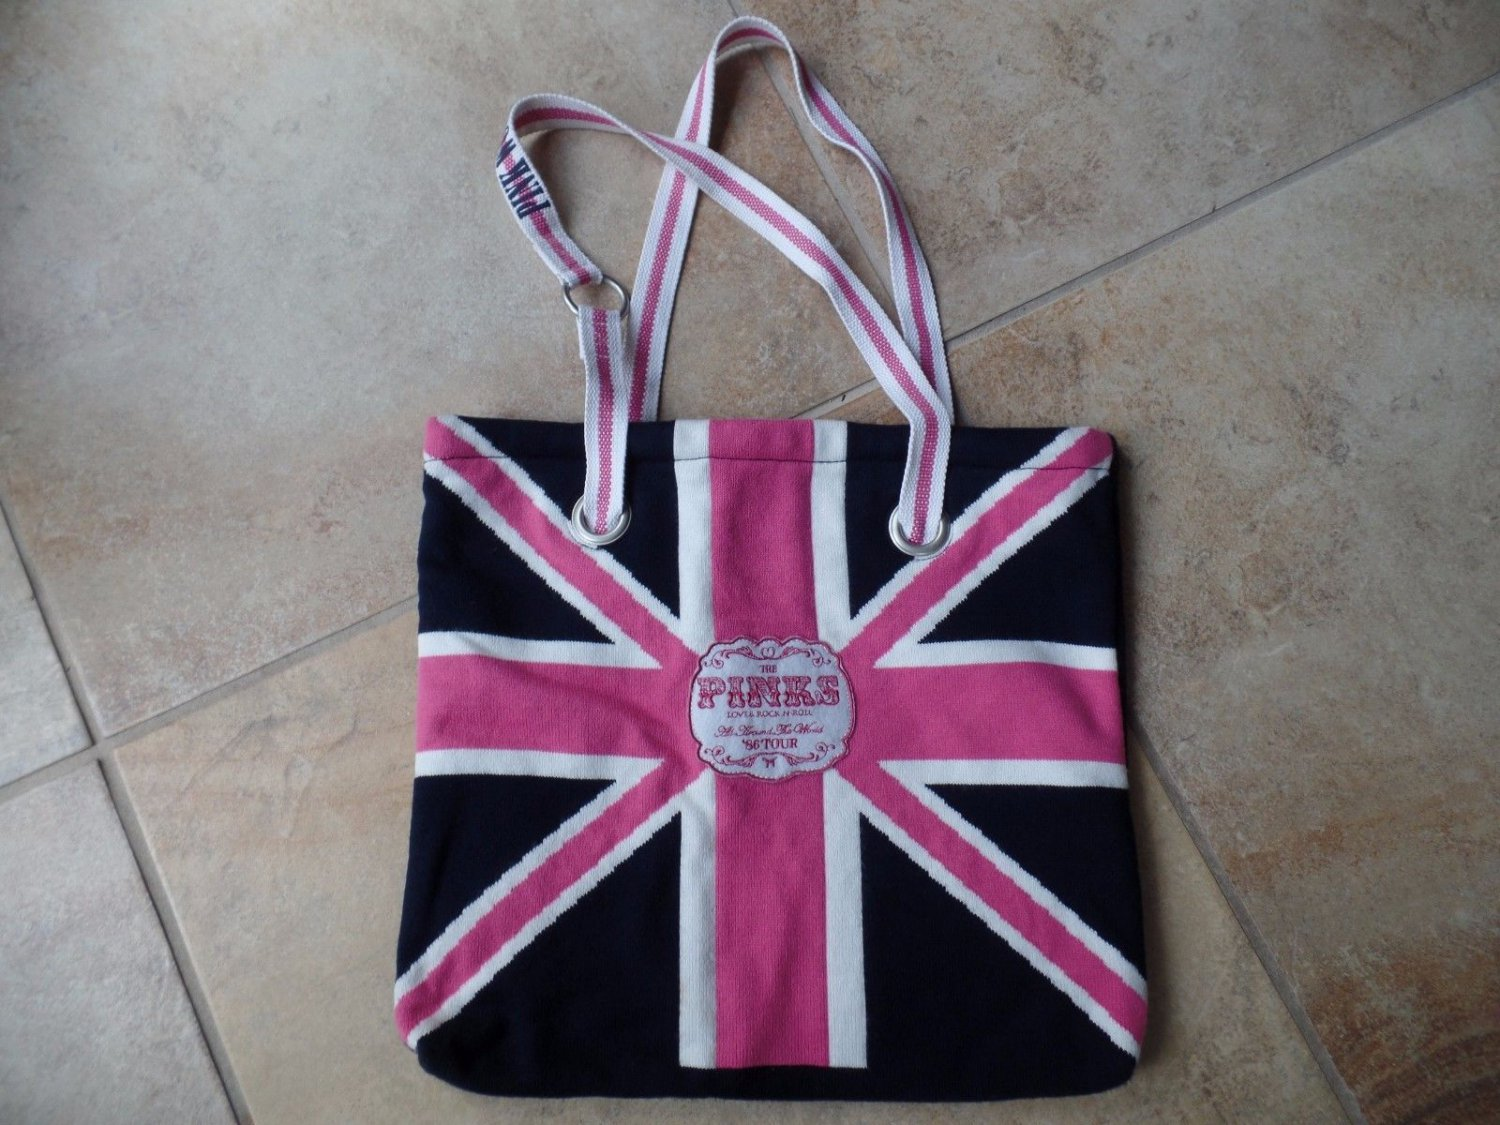 Victoria's Secret Pink Around the World Tour 86  Tote Bag